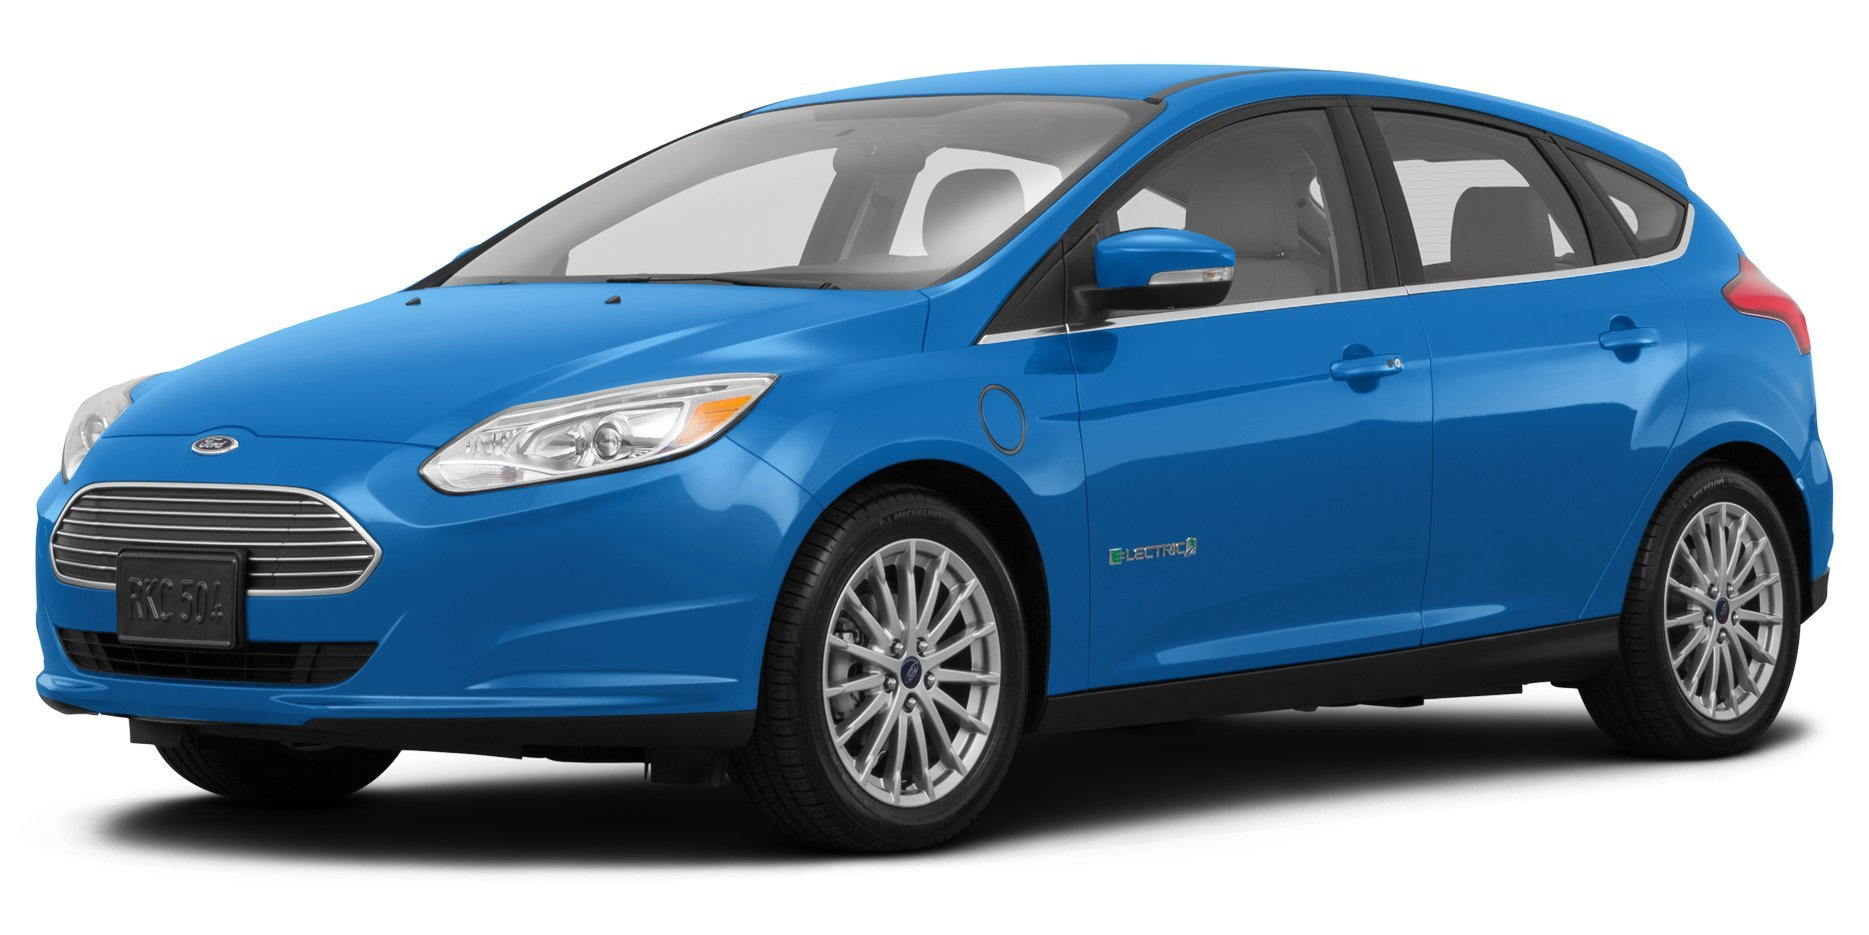 2015 ford focus reviews images and specs vehicles. Black Bedroom Furniture Sets. Home Design Ideas